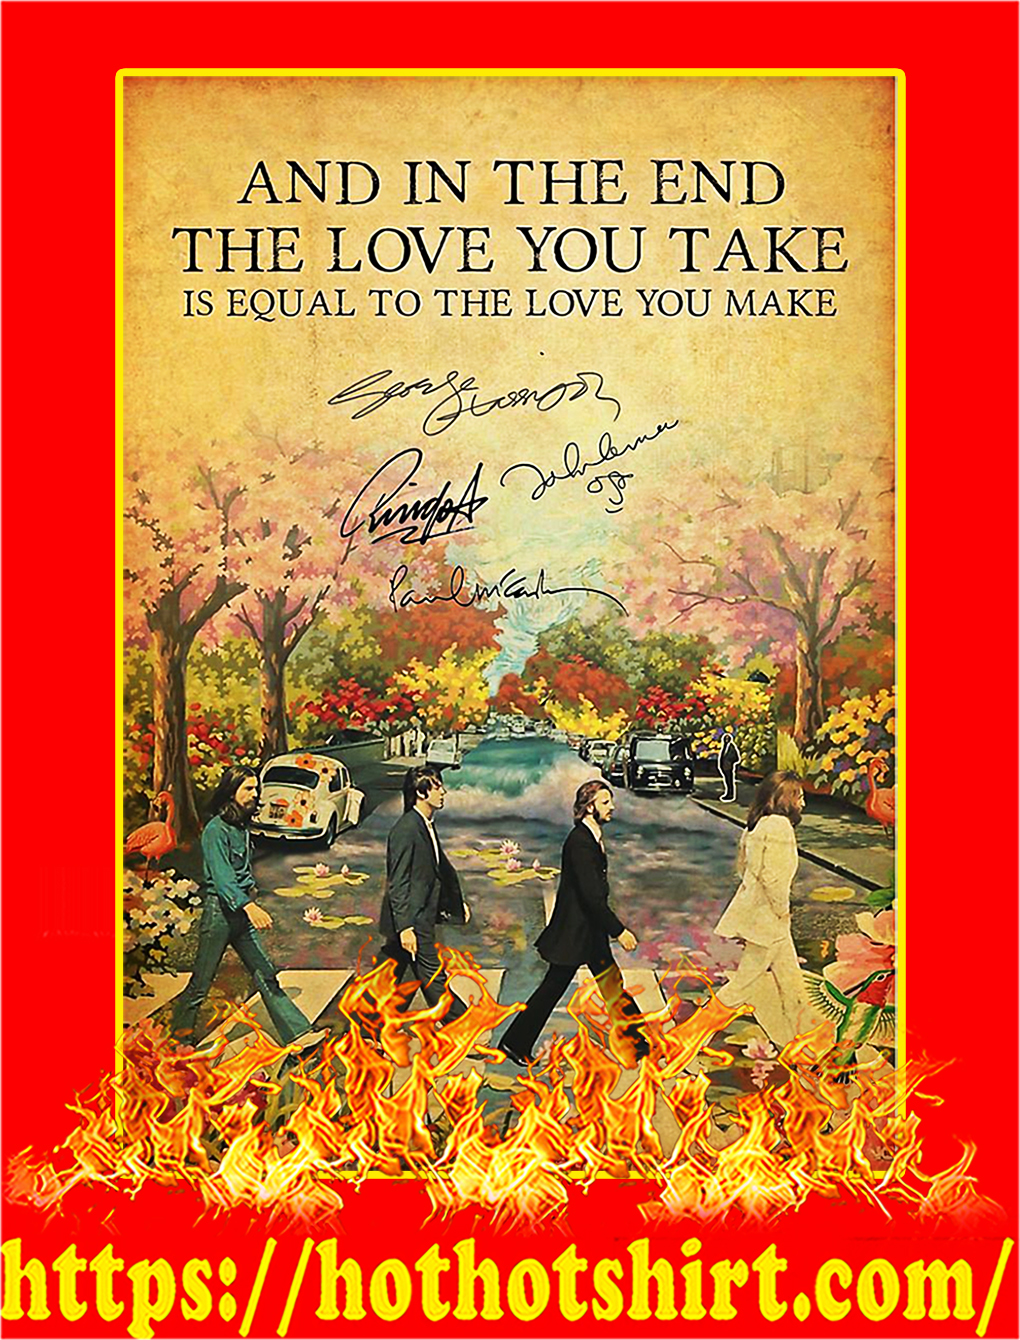 The Beatles And In The End Signature Poster - A1